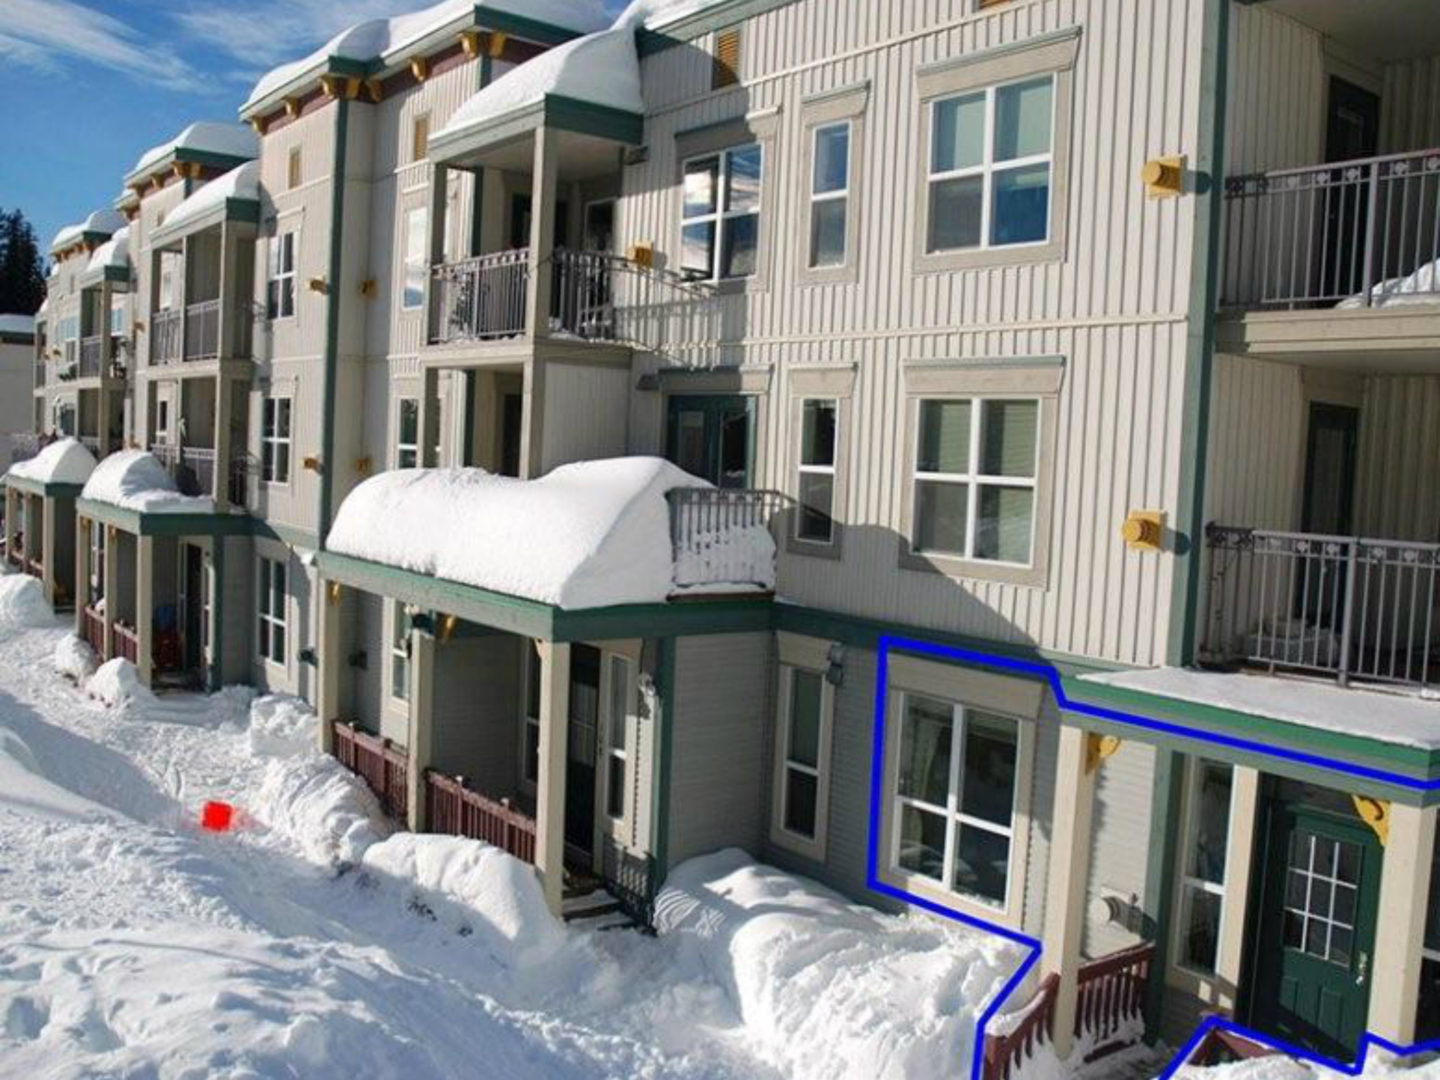 Silver Star Stays - Snow Place Like Home